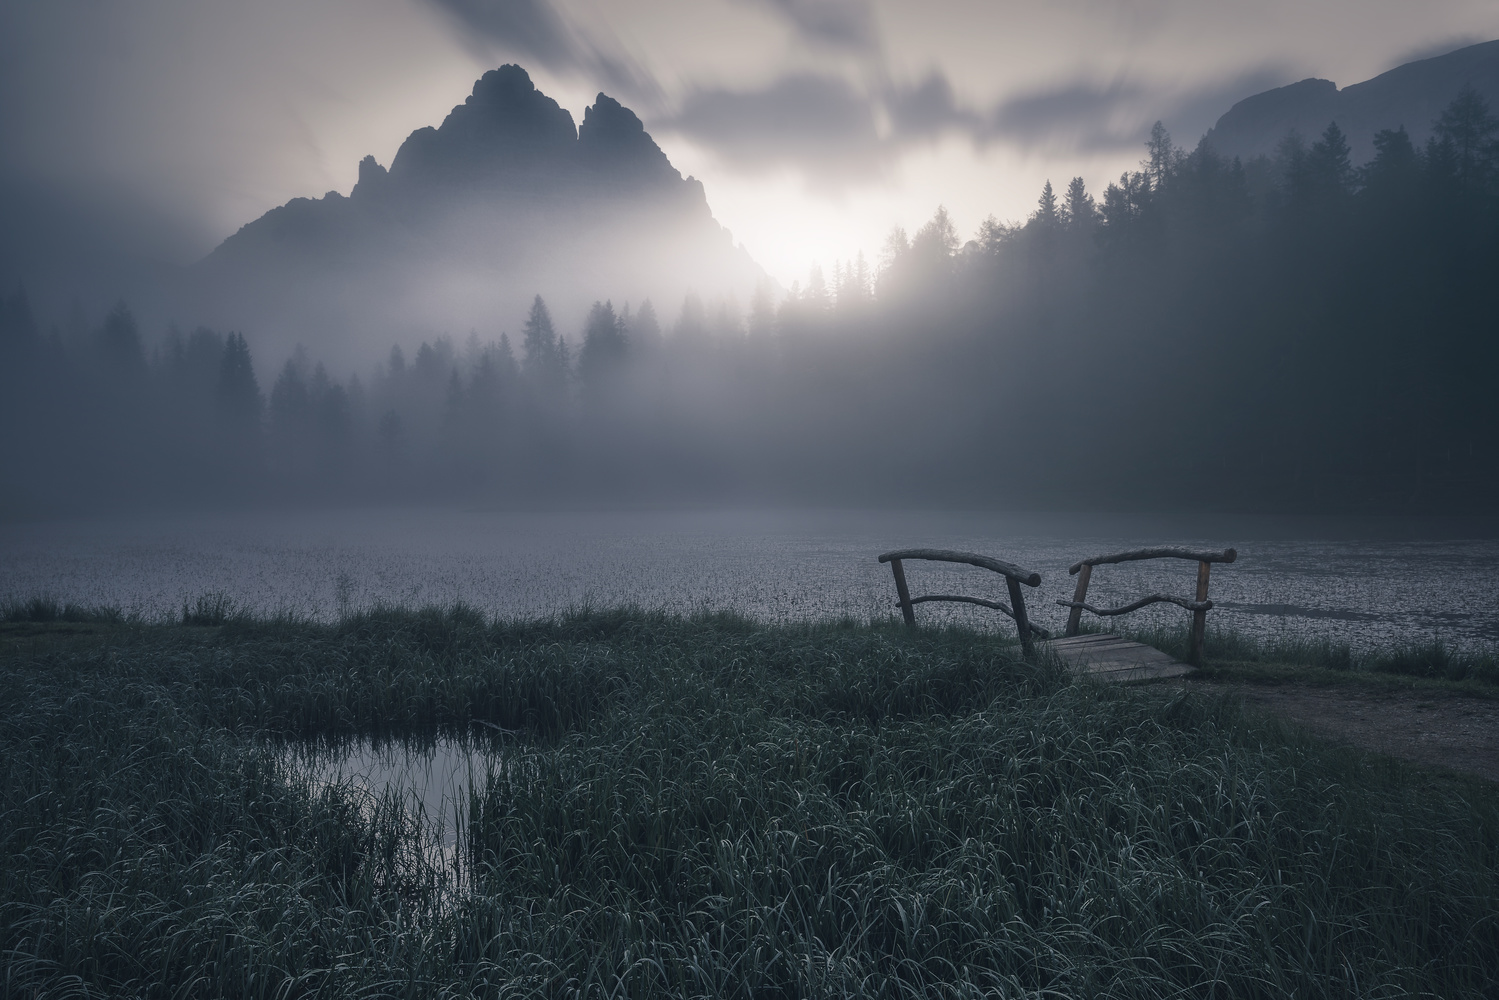 A Moment in Time by Thomas De Franzoni